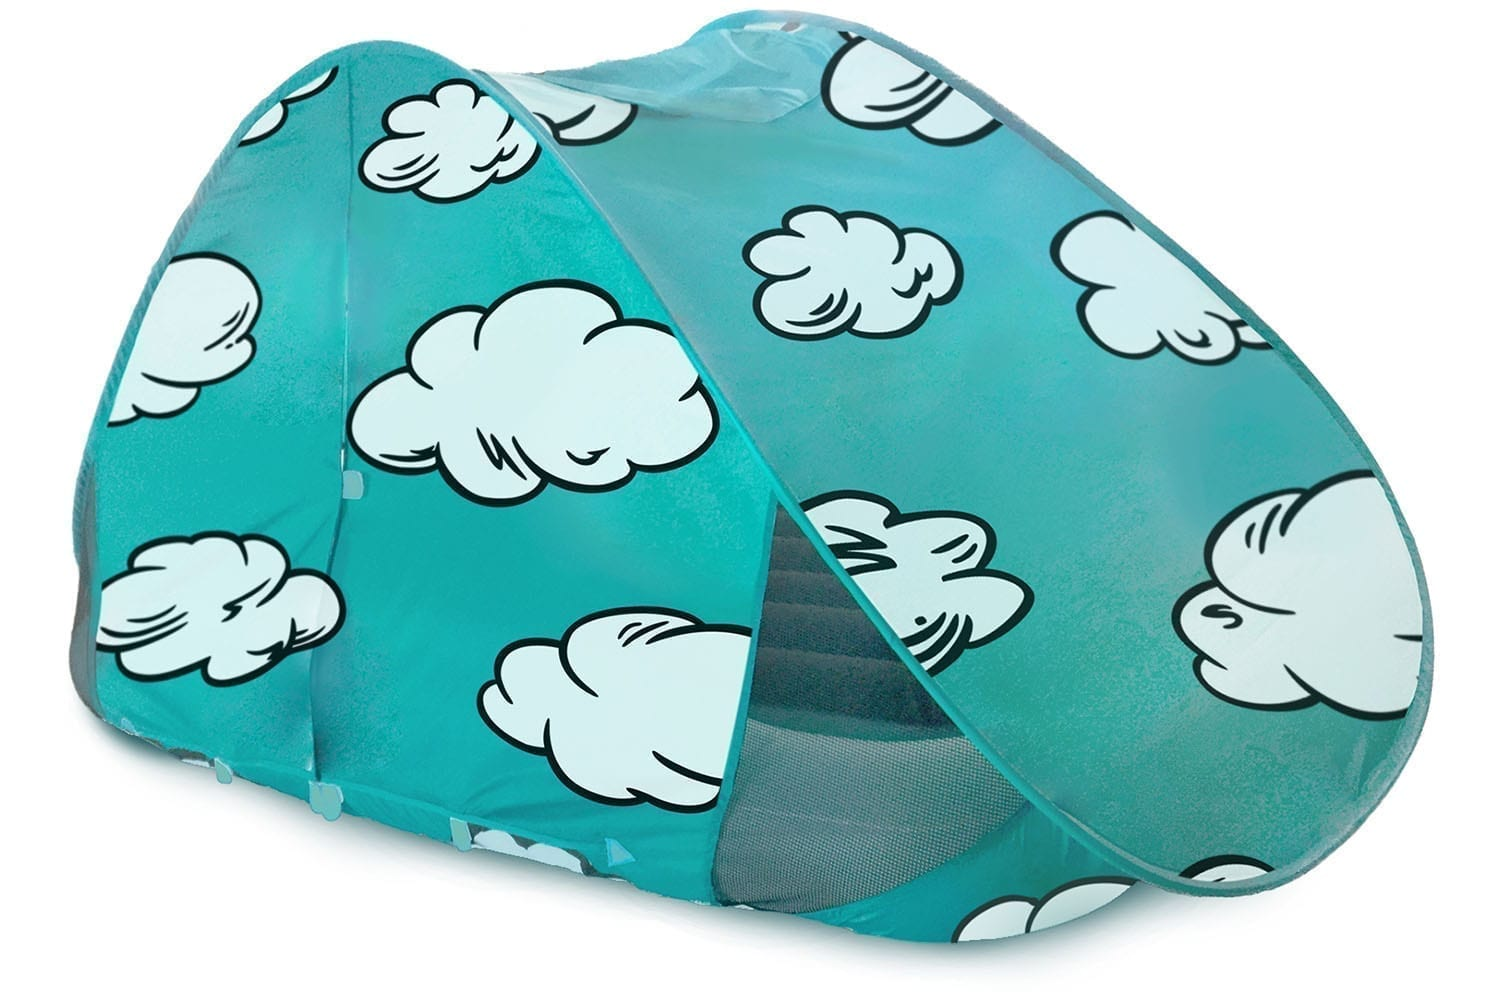 Toddler Bed Tent The Shrunks Small Big Small